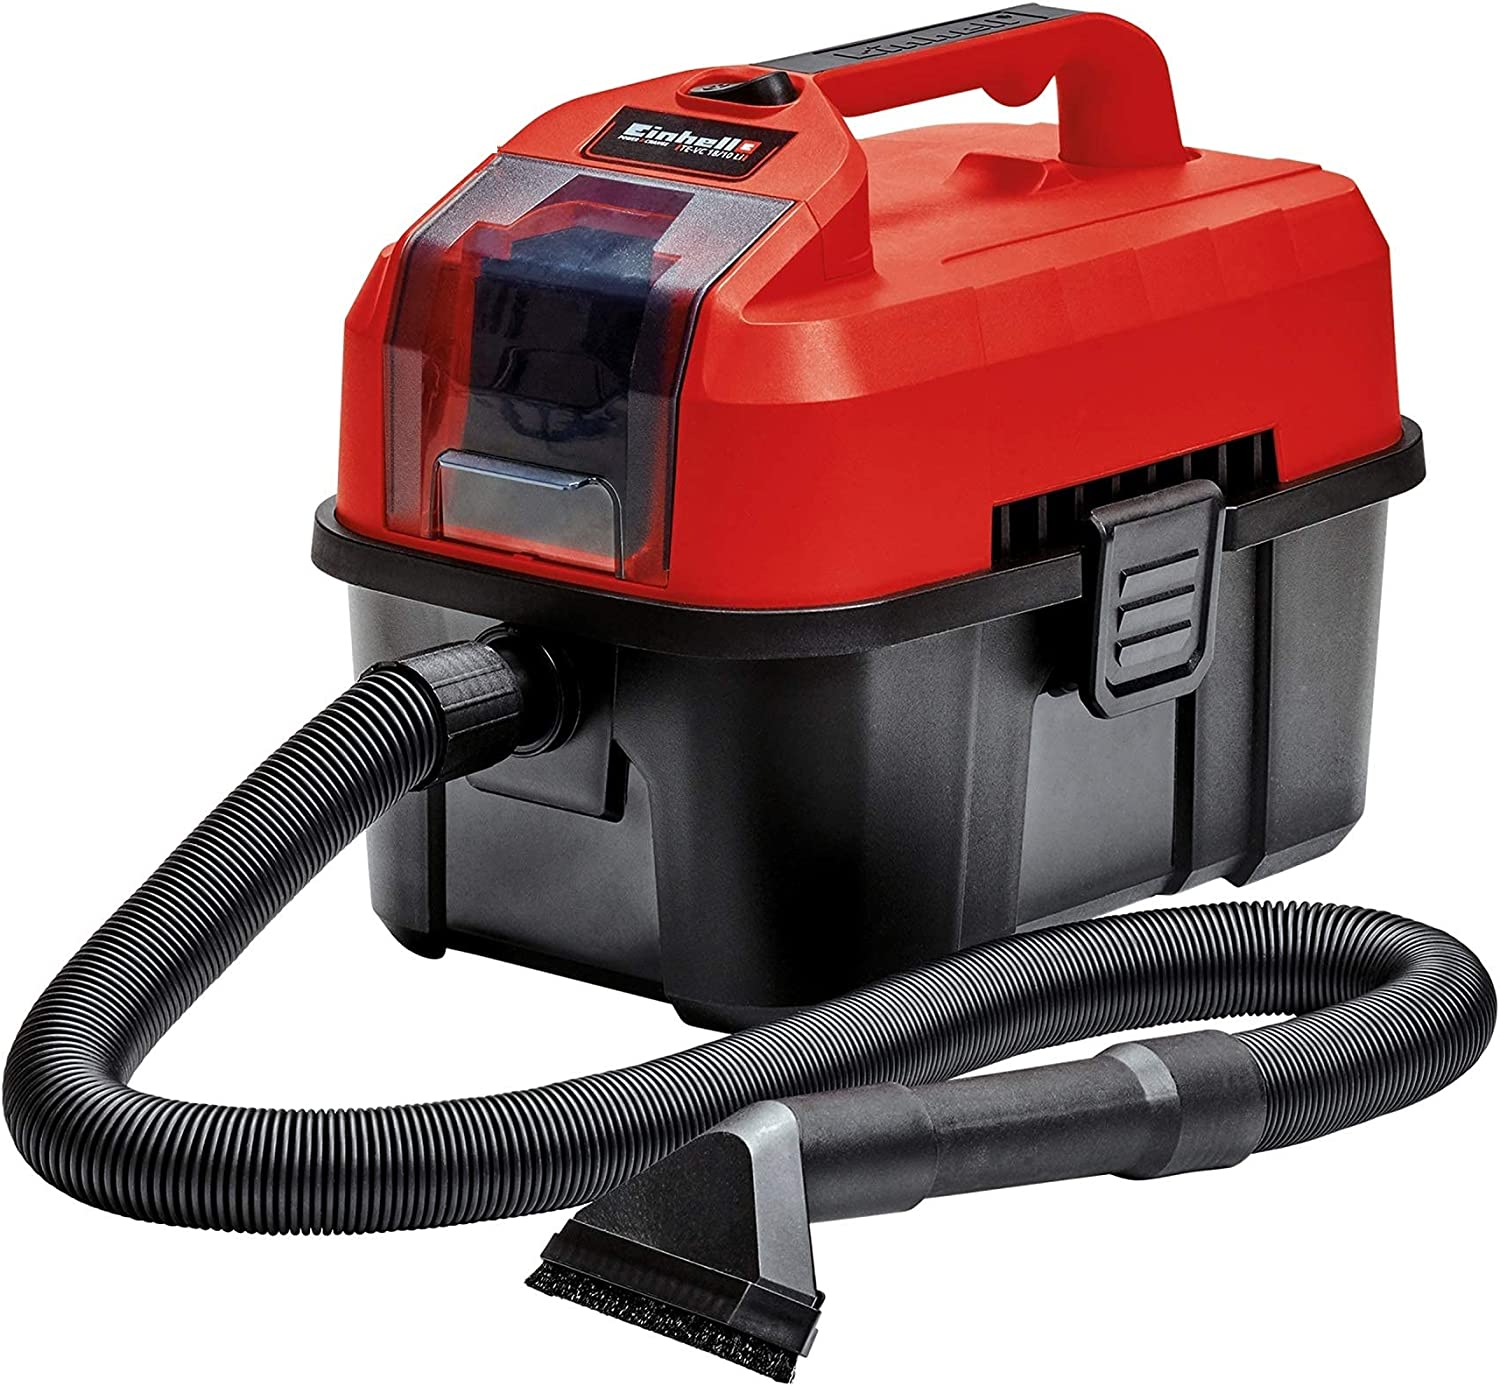 Einhell 2347165 TE-VC 2.7 Gallon Portable Tool Import Wet and Dry Shop Max 43% OFF